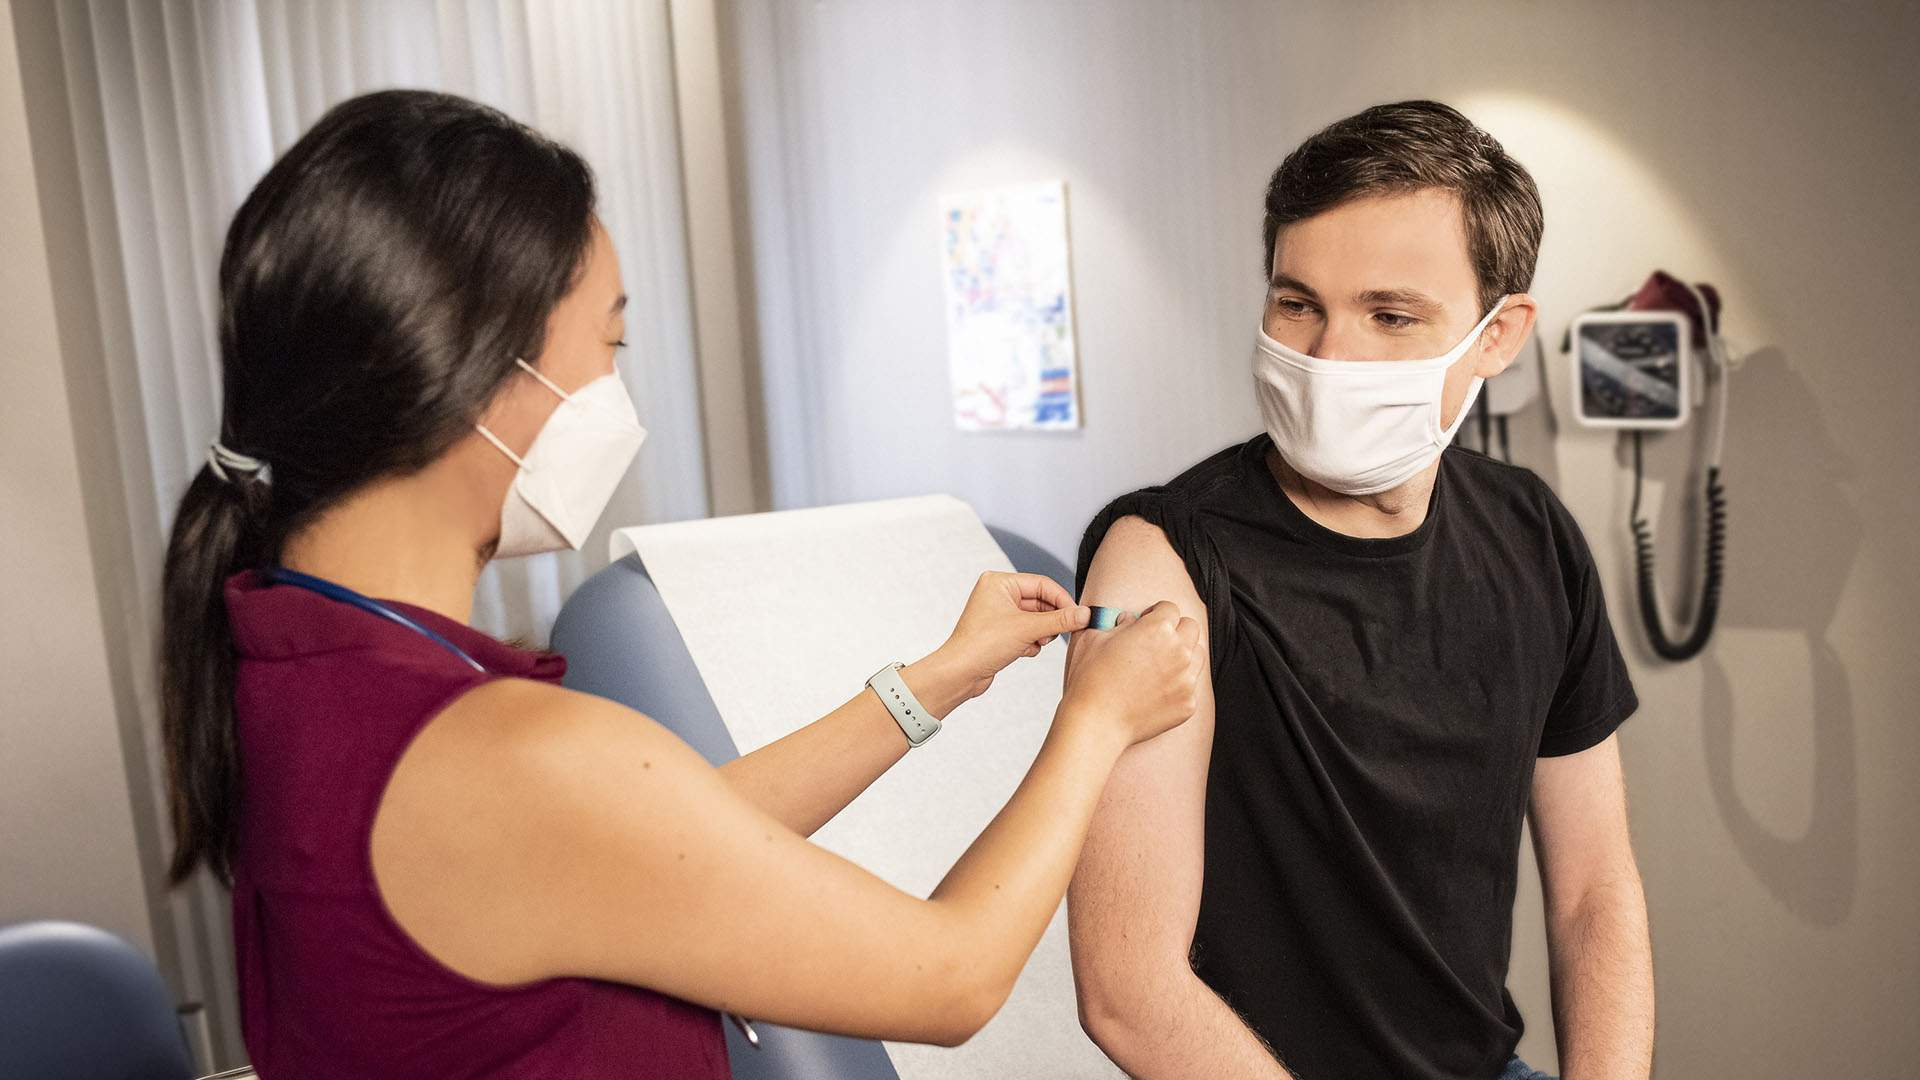 Fifty Percent of Eligible Australians Are Now Fully Vaccinated Against COVID-19